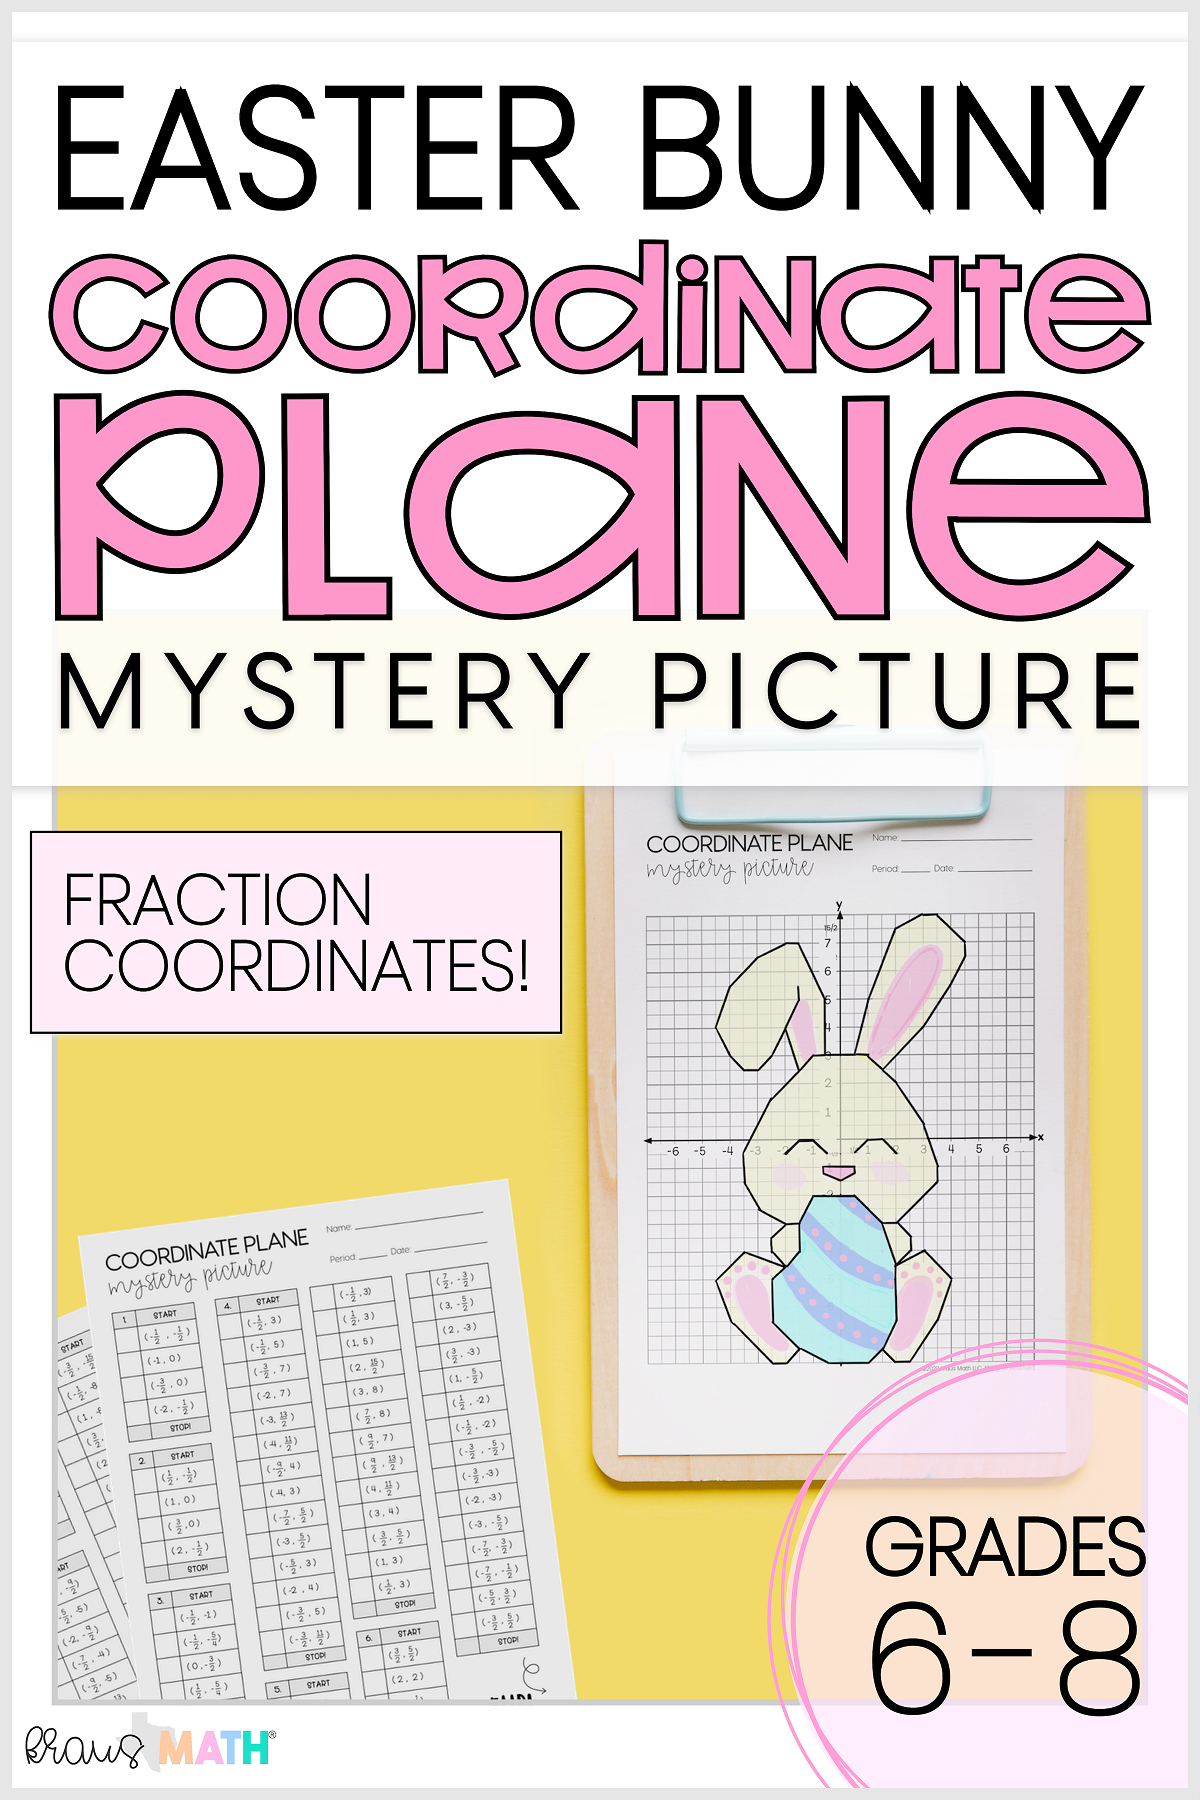 Easter Bunny Coordinate Plane Mystery Picture 4 Quadrants